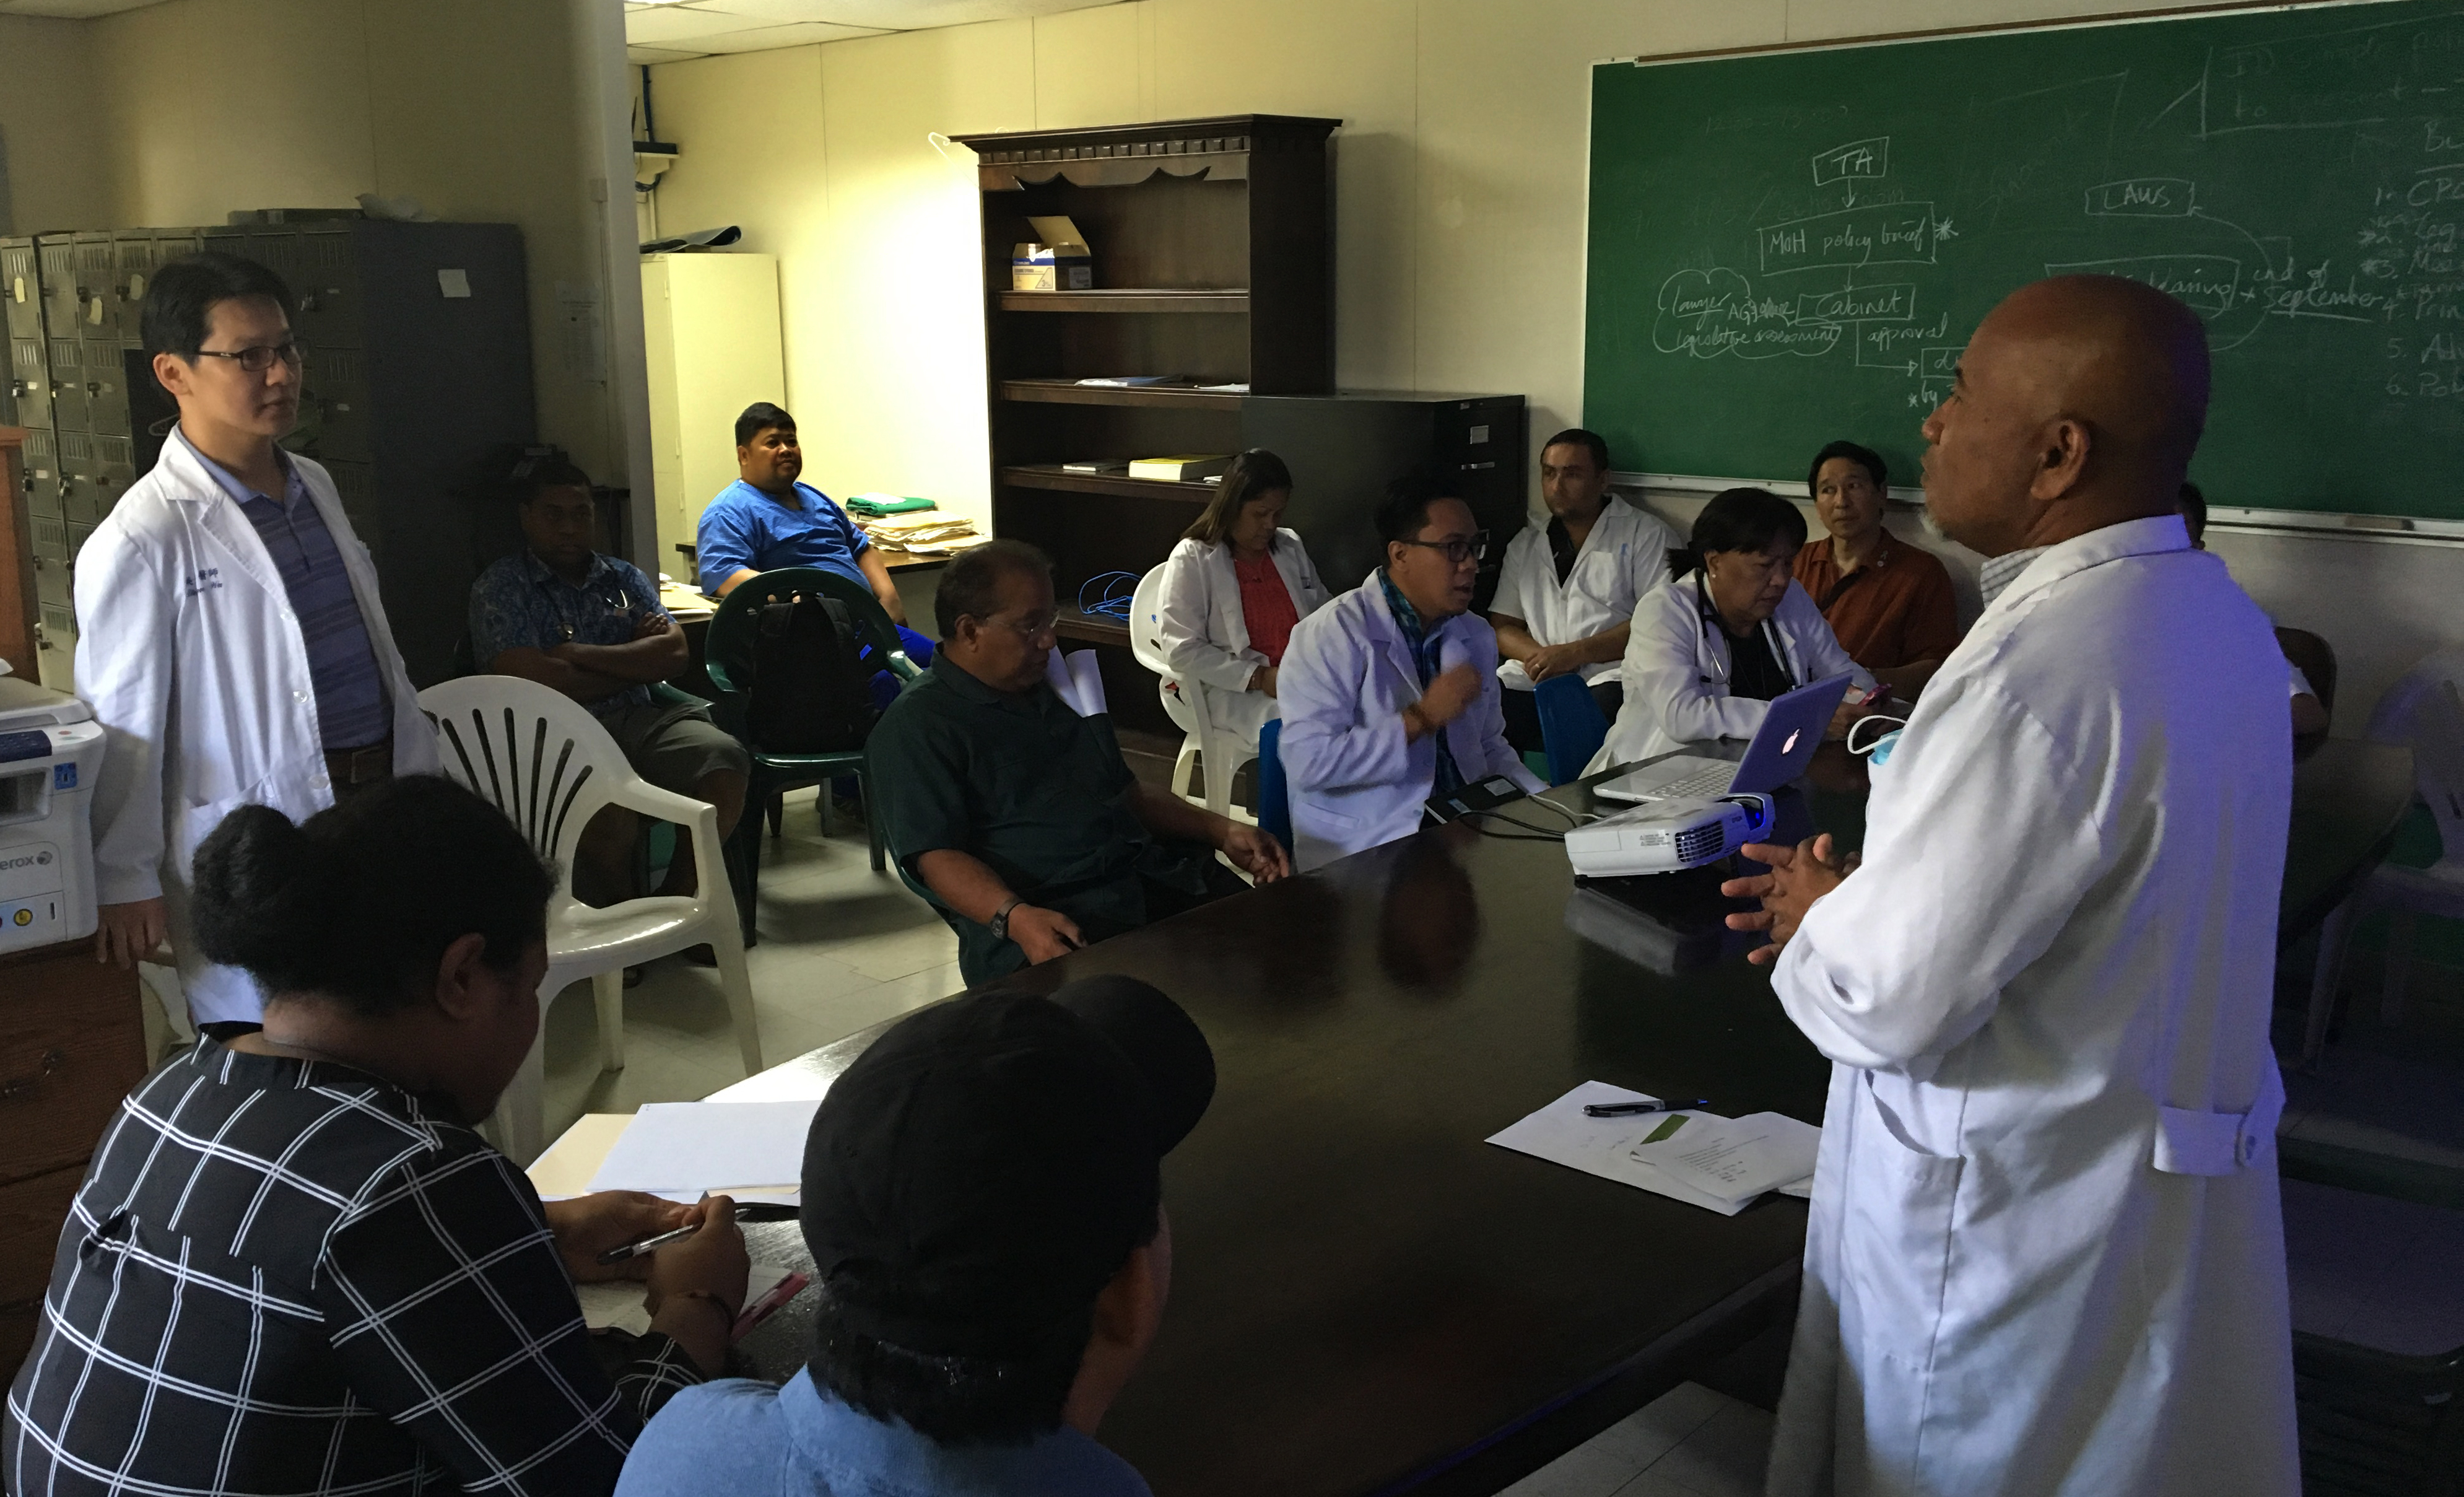 Affordable Universal Health Coverage ─ Taiwan can help --- Swaziland | Taipei Medical University | Leave No One Behind